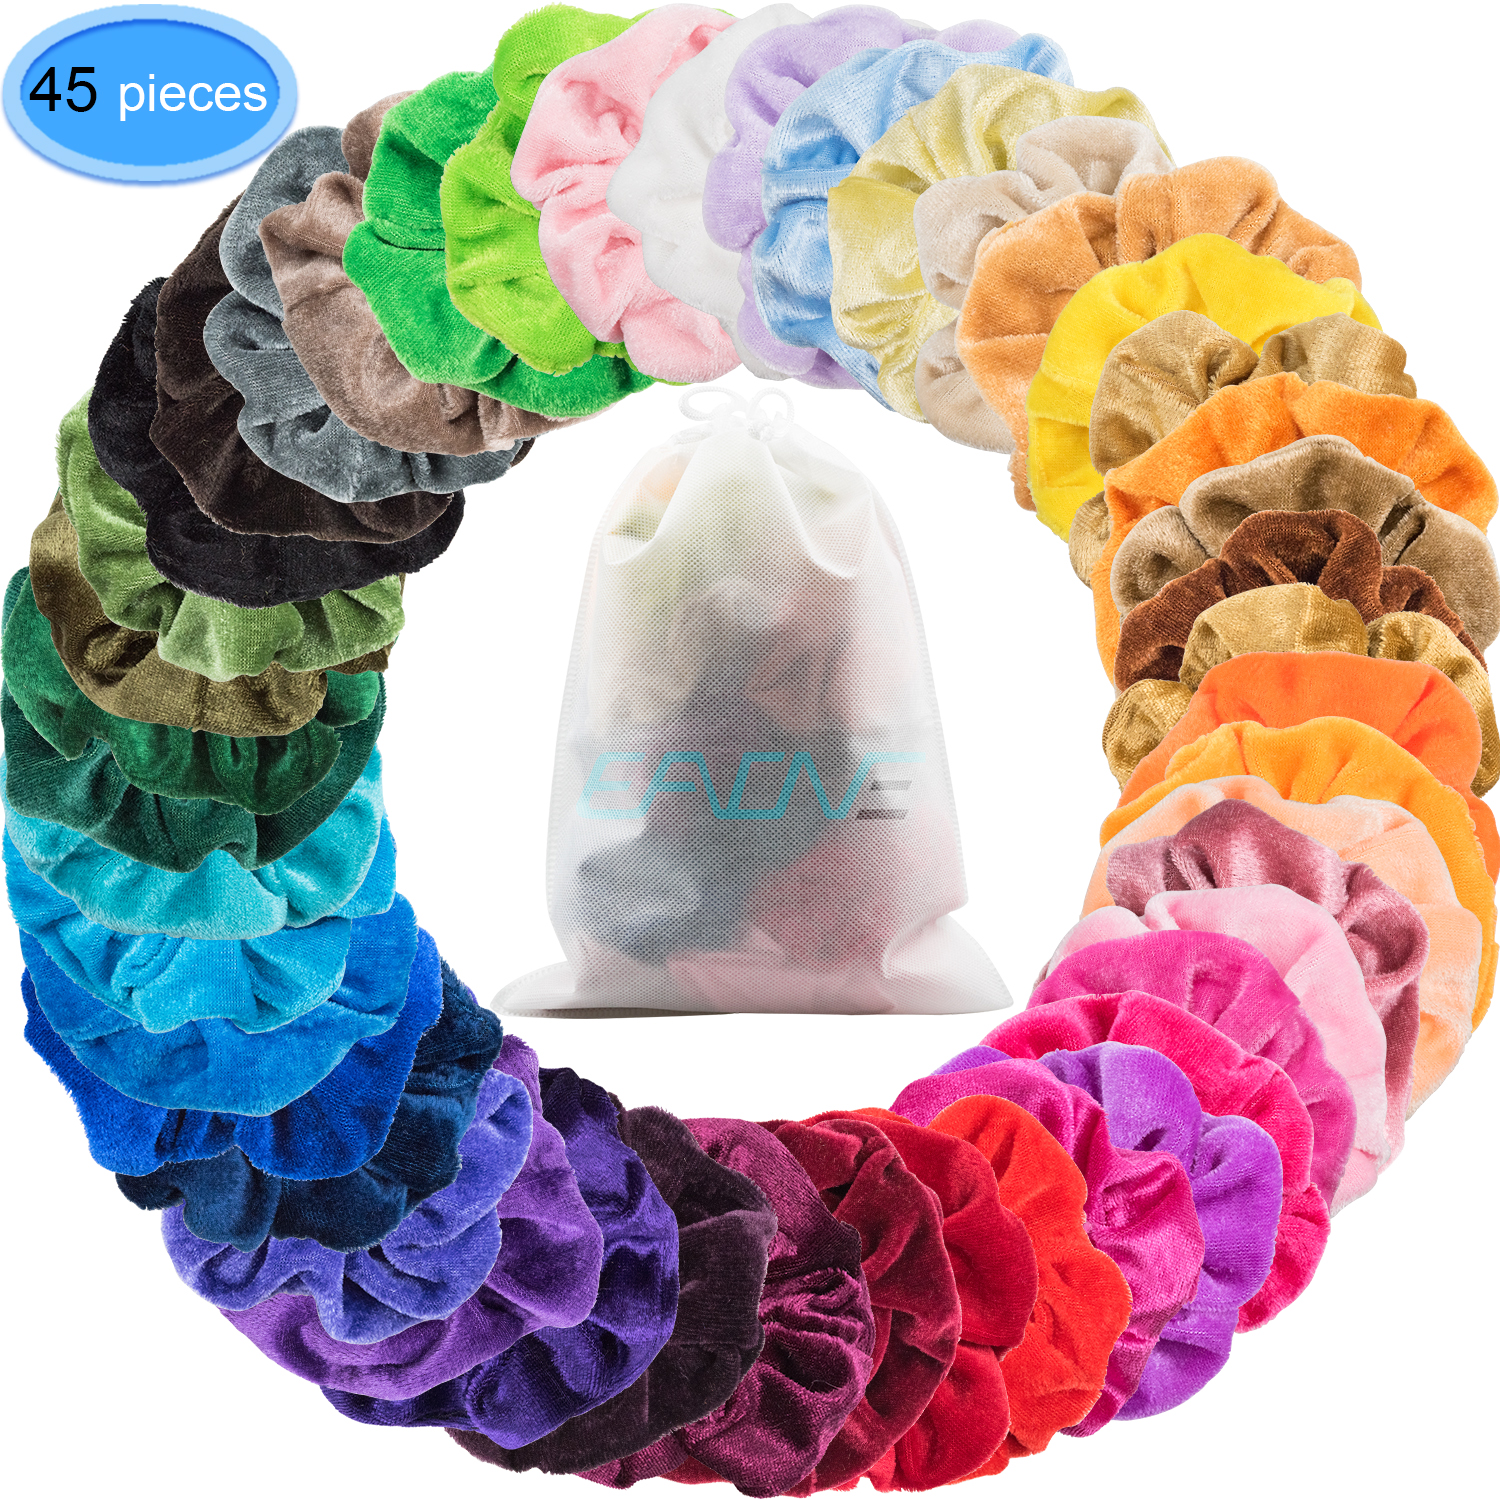 EAONE 45 Colors Hair Scrunchies Velvet Elastic Hair Ties Scrunchy Hair Bands Ponytail Holder Headbands for Women Girls Hair Accessories, 45 Pieces